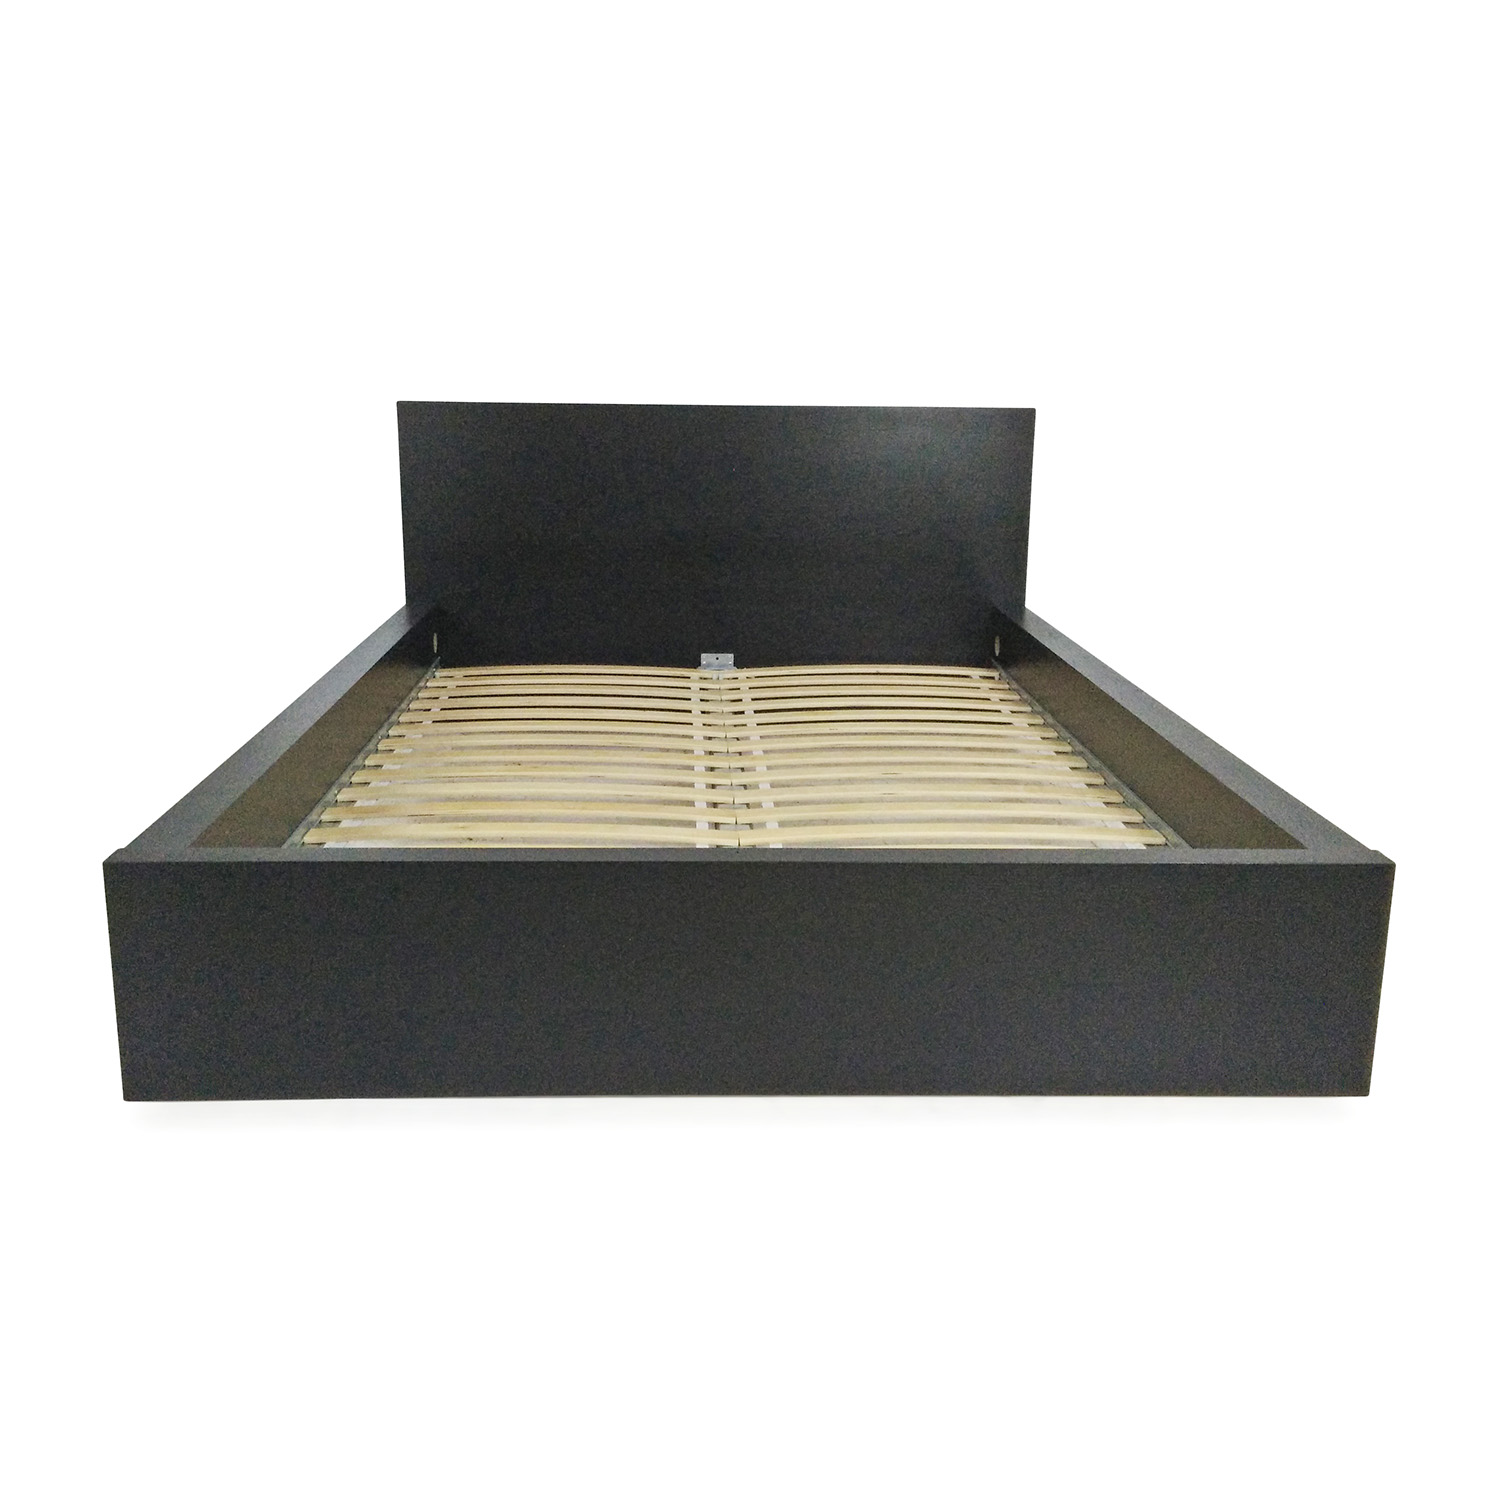 IKEA MALM Black Bed Frame dimensions